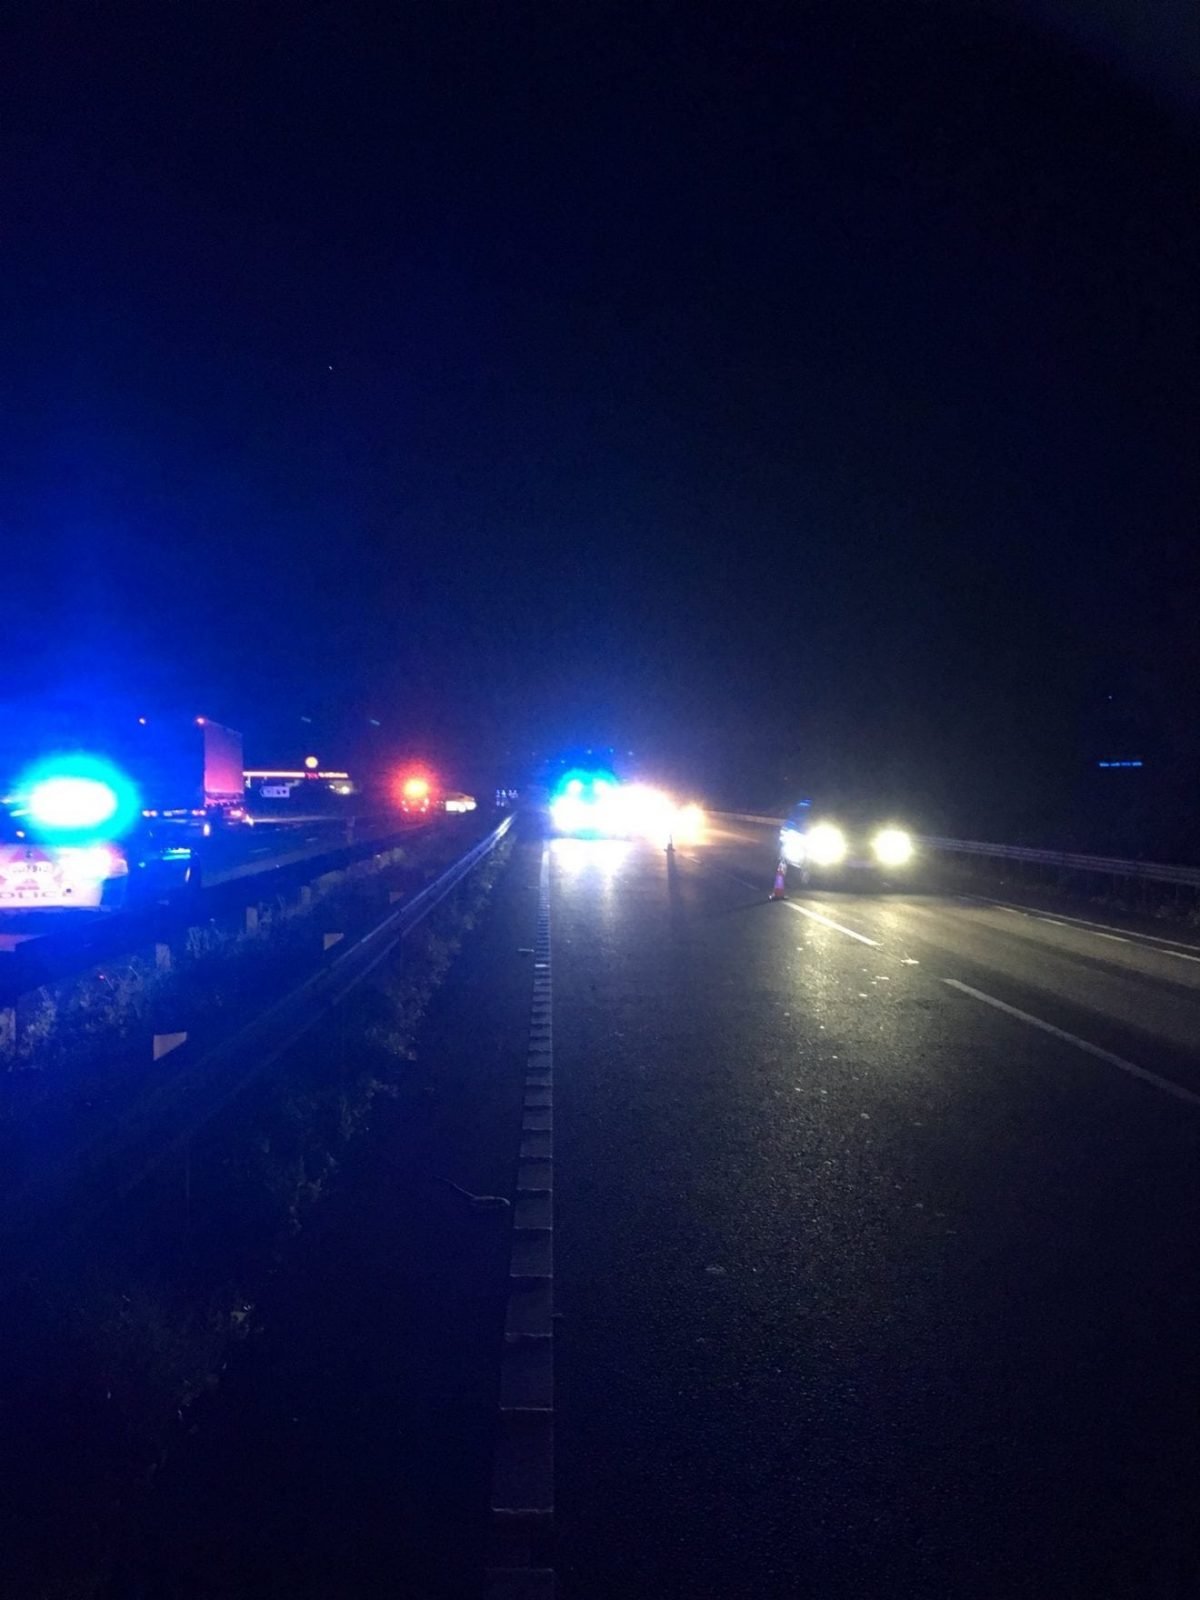 A34 Closed In Both Directions In Oxfordshire Following Serious Collision